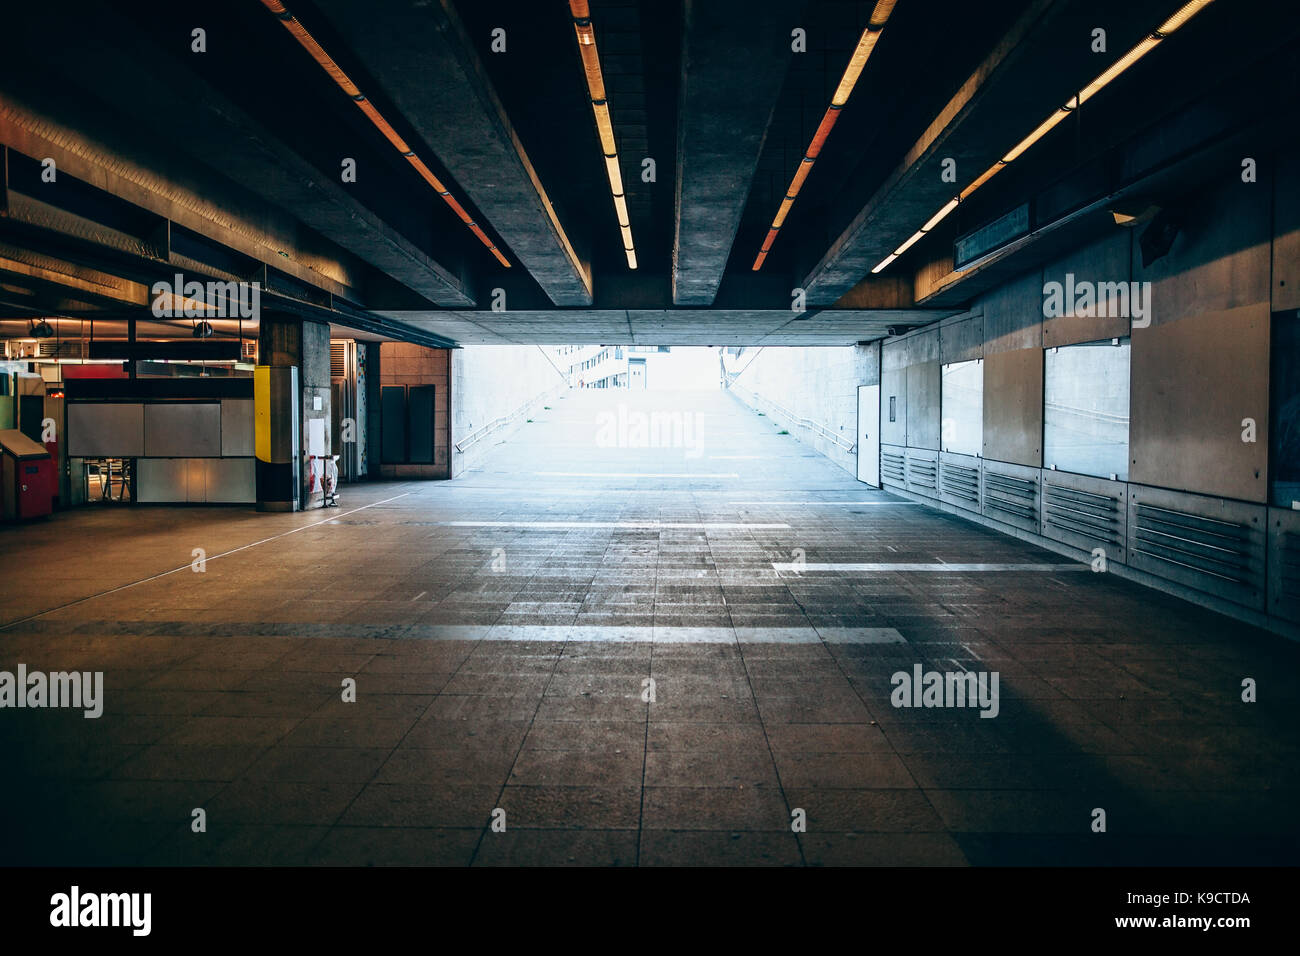 Exit from the underground metro. Light at the end of the tunnel concept - Stock Image